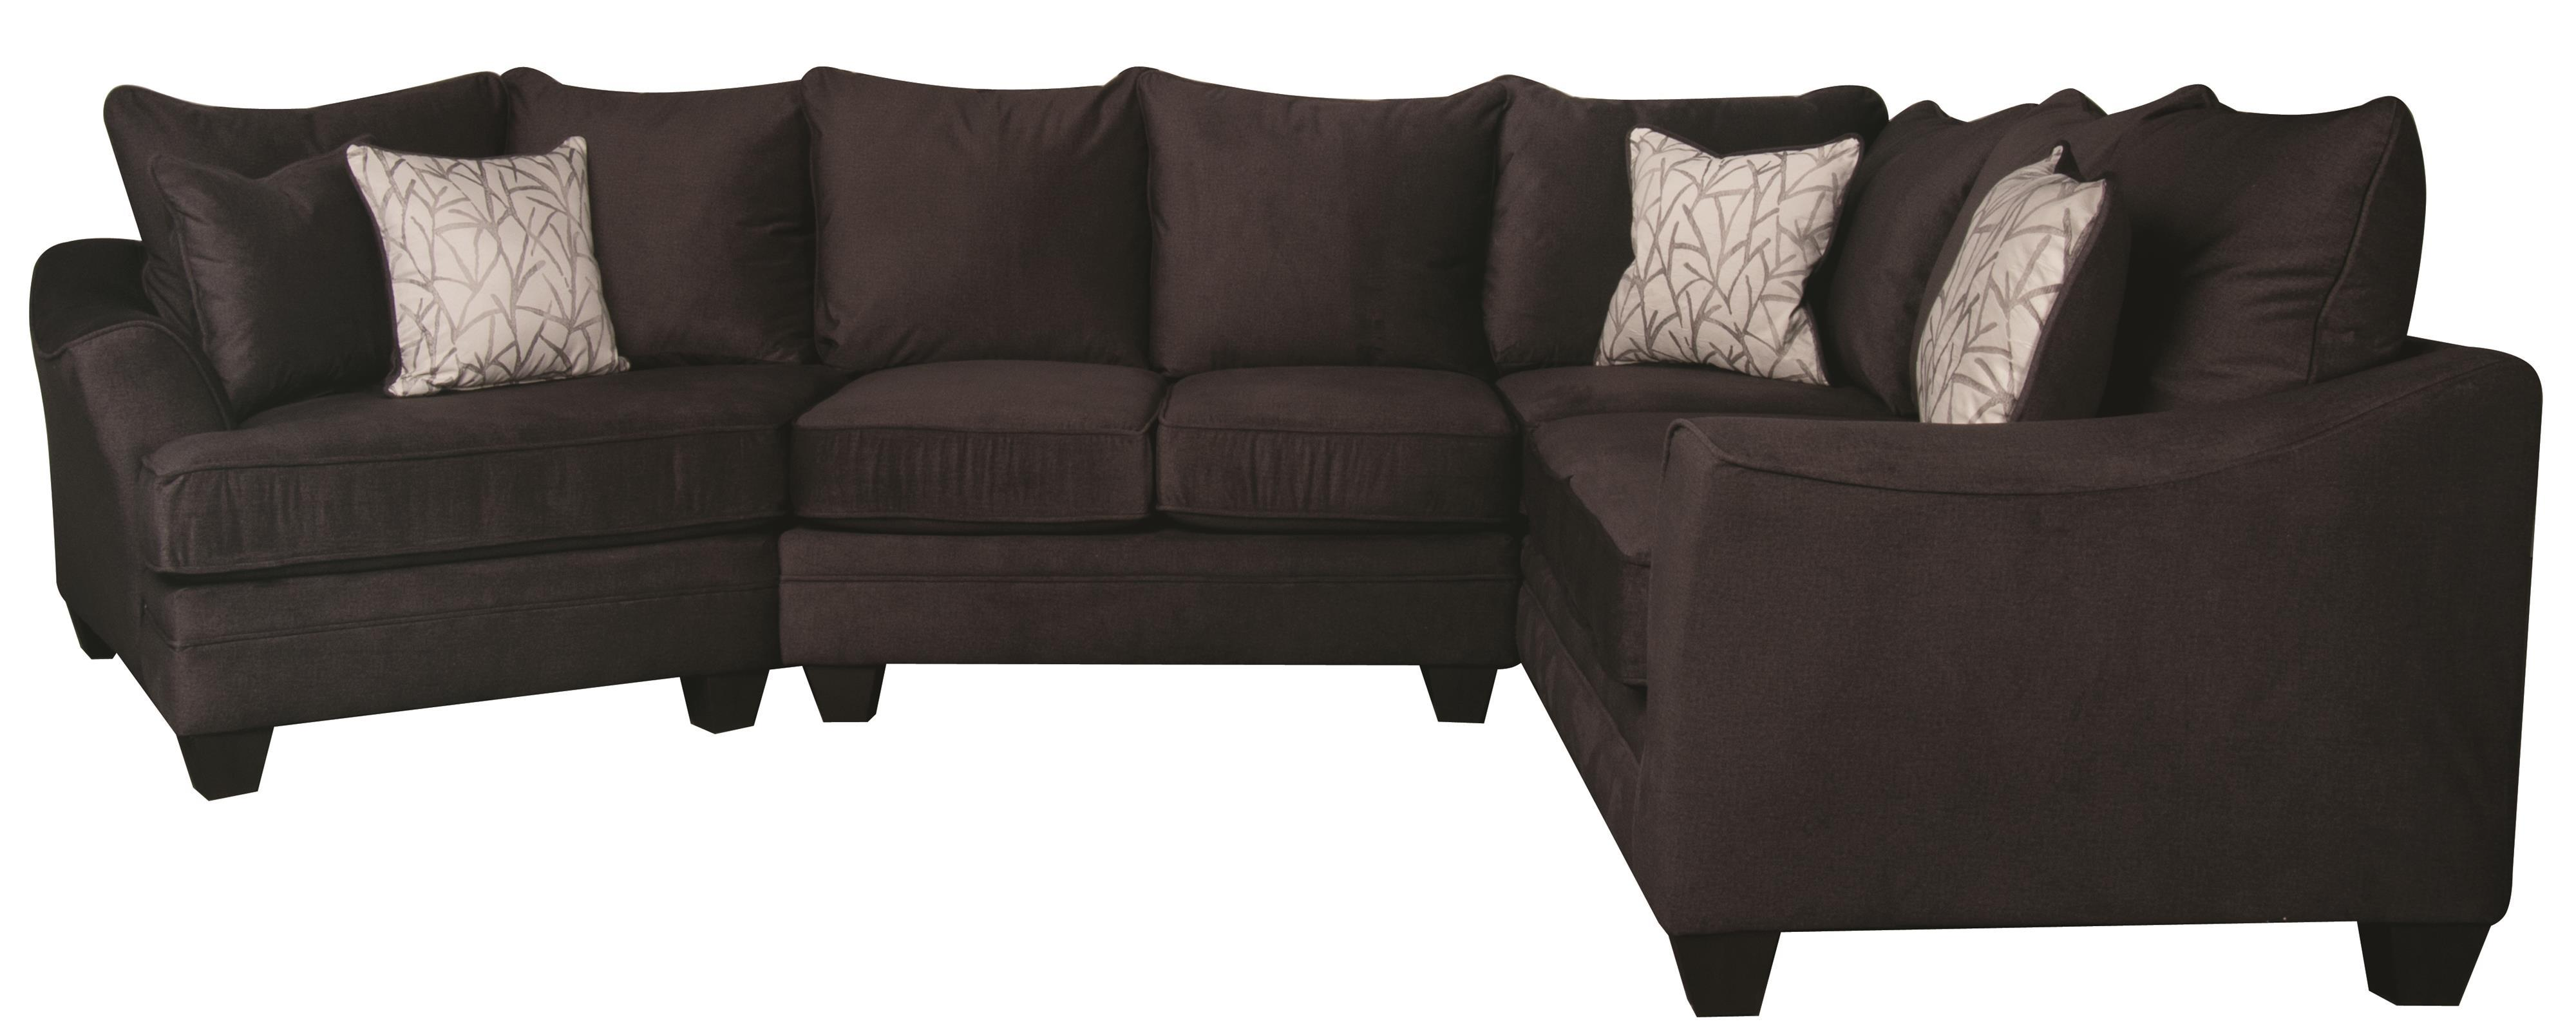 Rachel 3 piece sectional morris home sofa sectional Morris home furniture hours